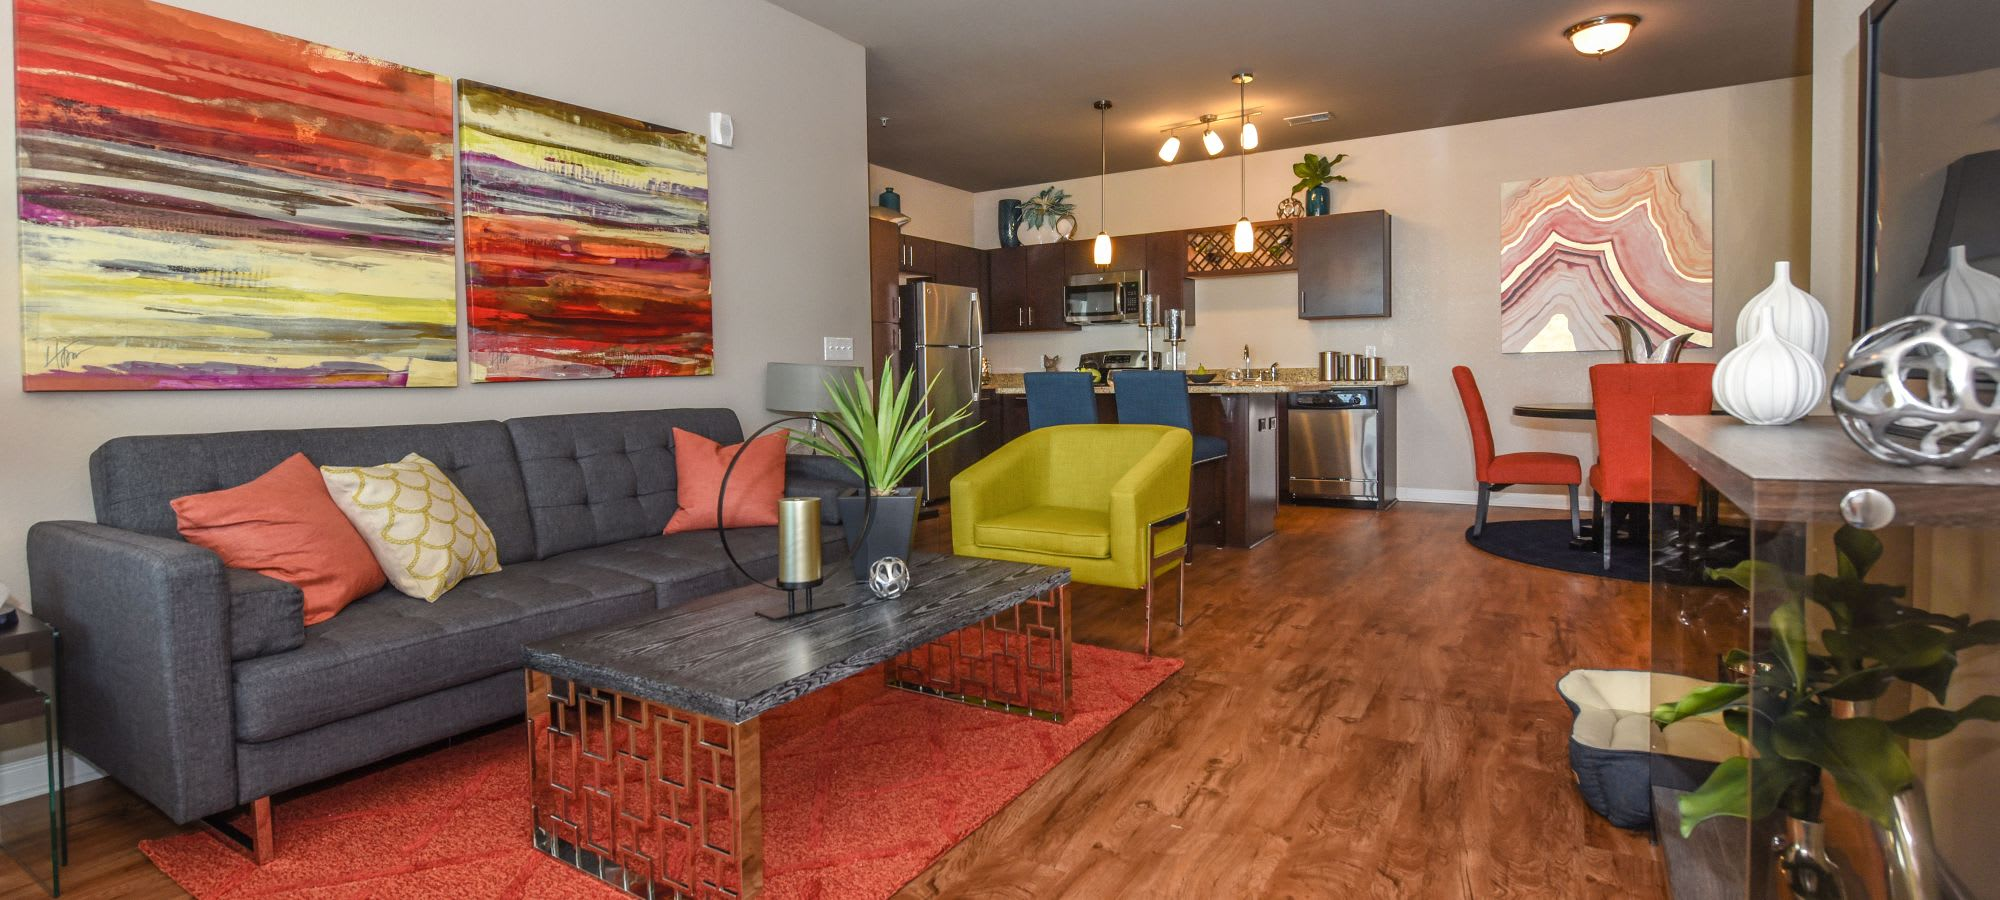 Greenville sc apartments townhomes springs at laurens - 1 bedroom apartments greenville sc ...